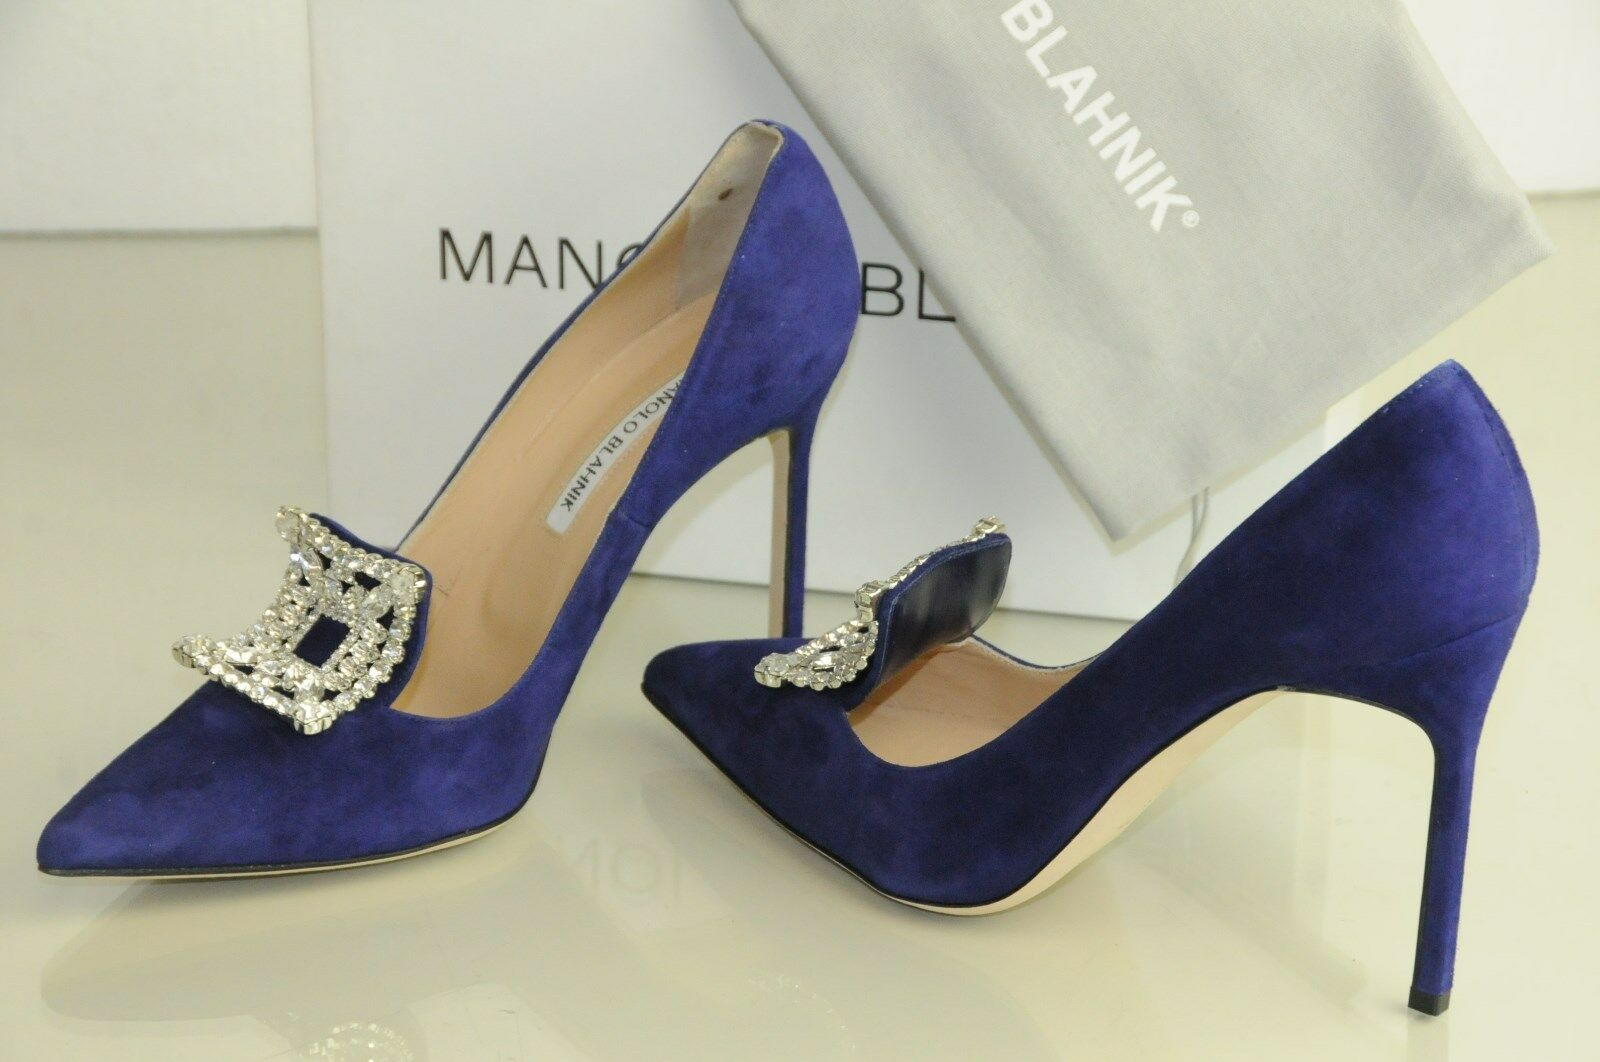 1135 New Manolo Blahnik BORLAK Purple Suede Jeweled Shoes Pumps 39.5 40.5